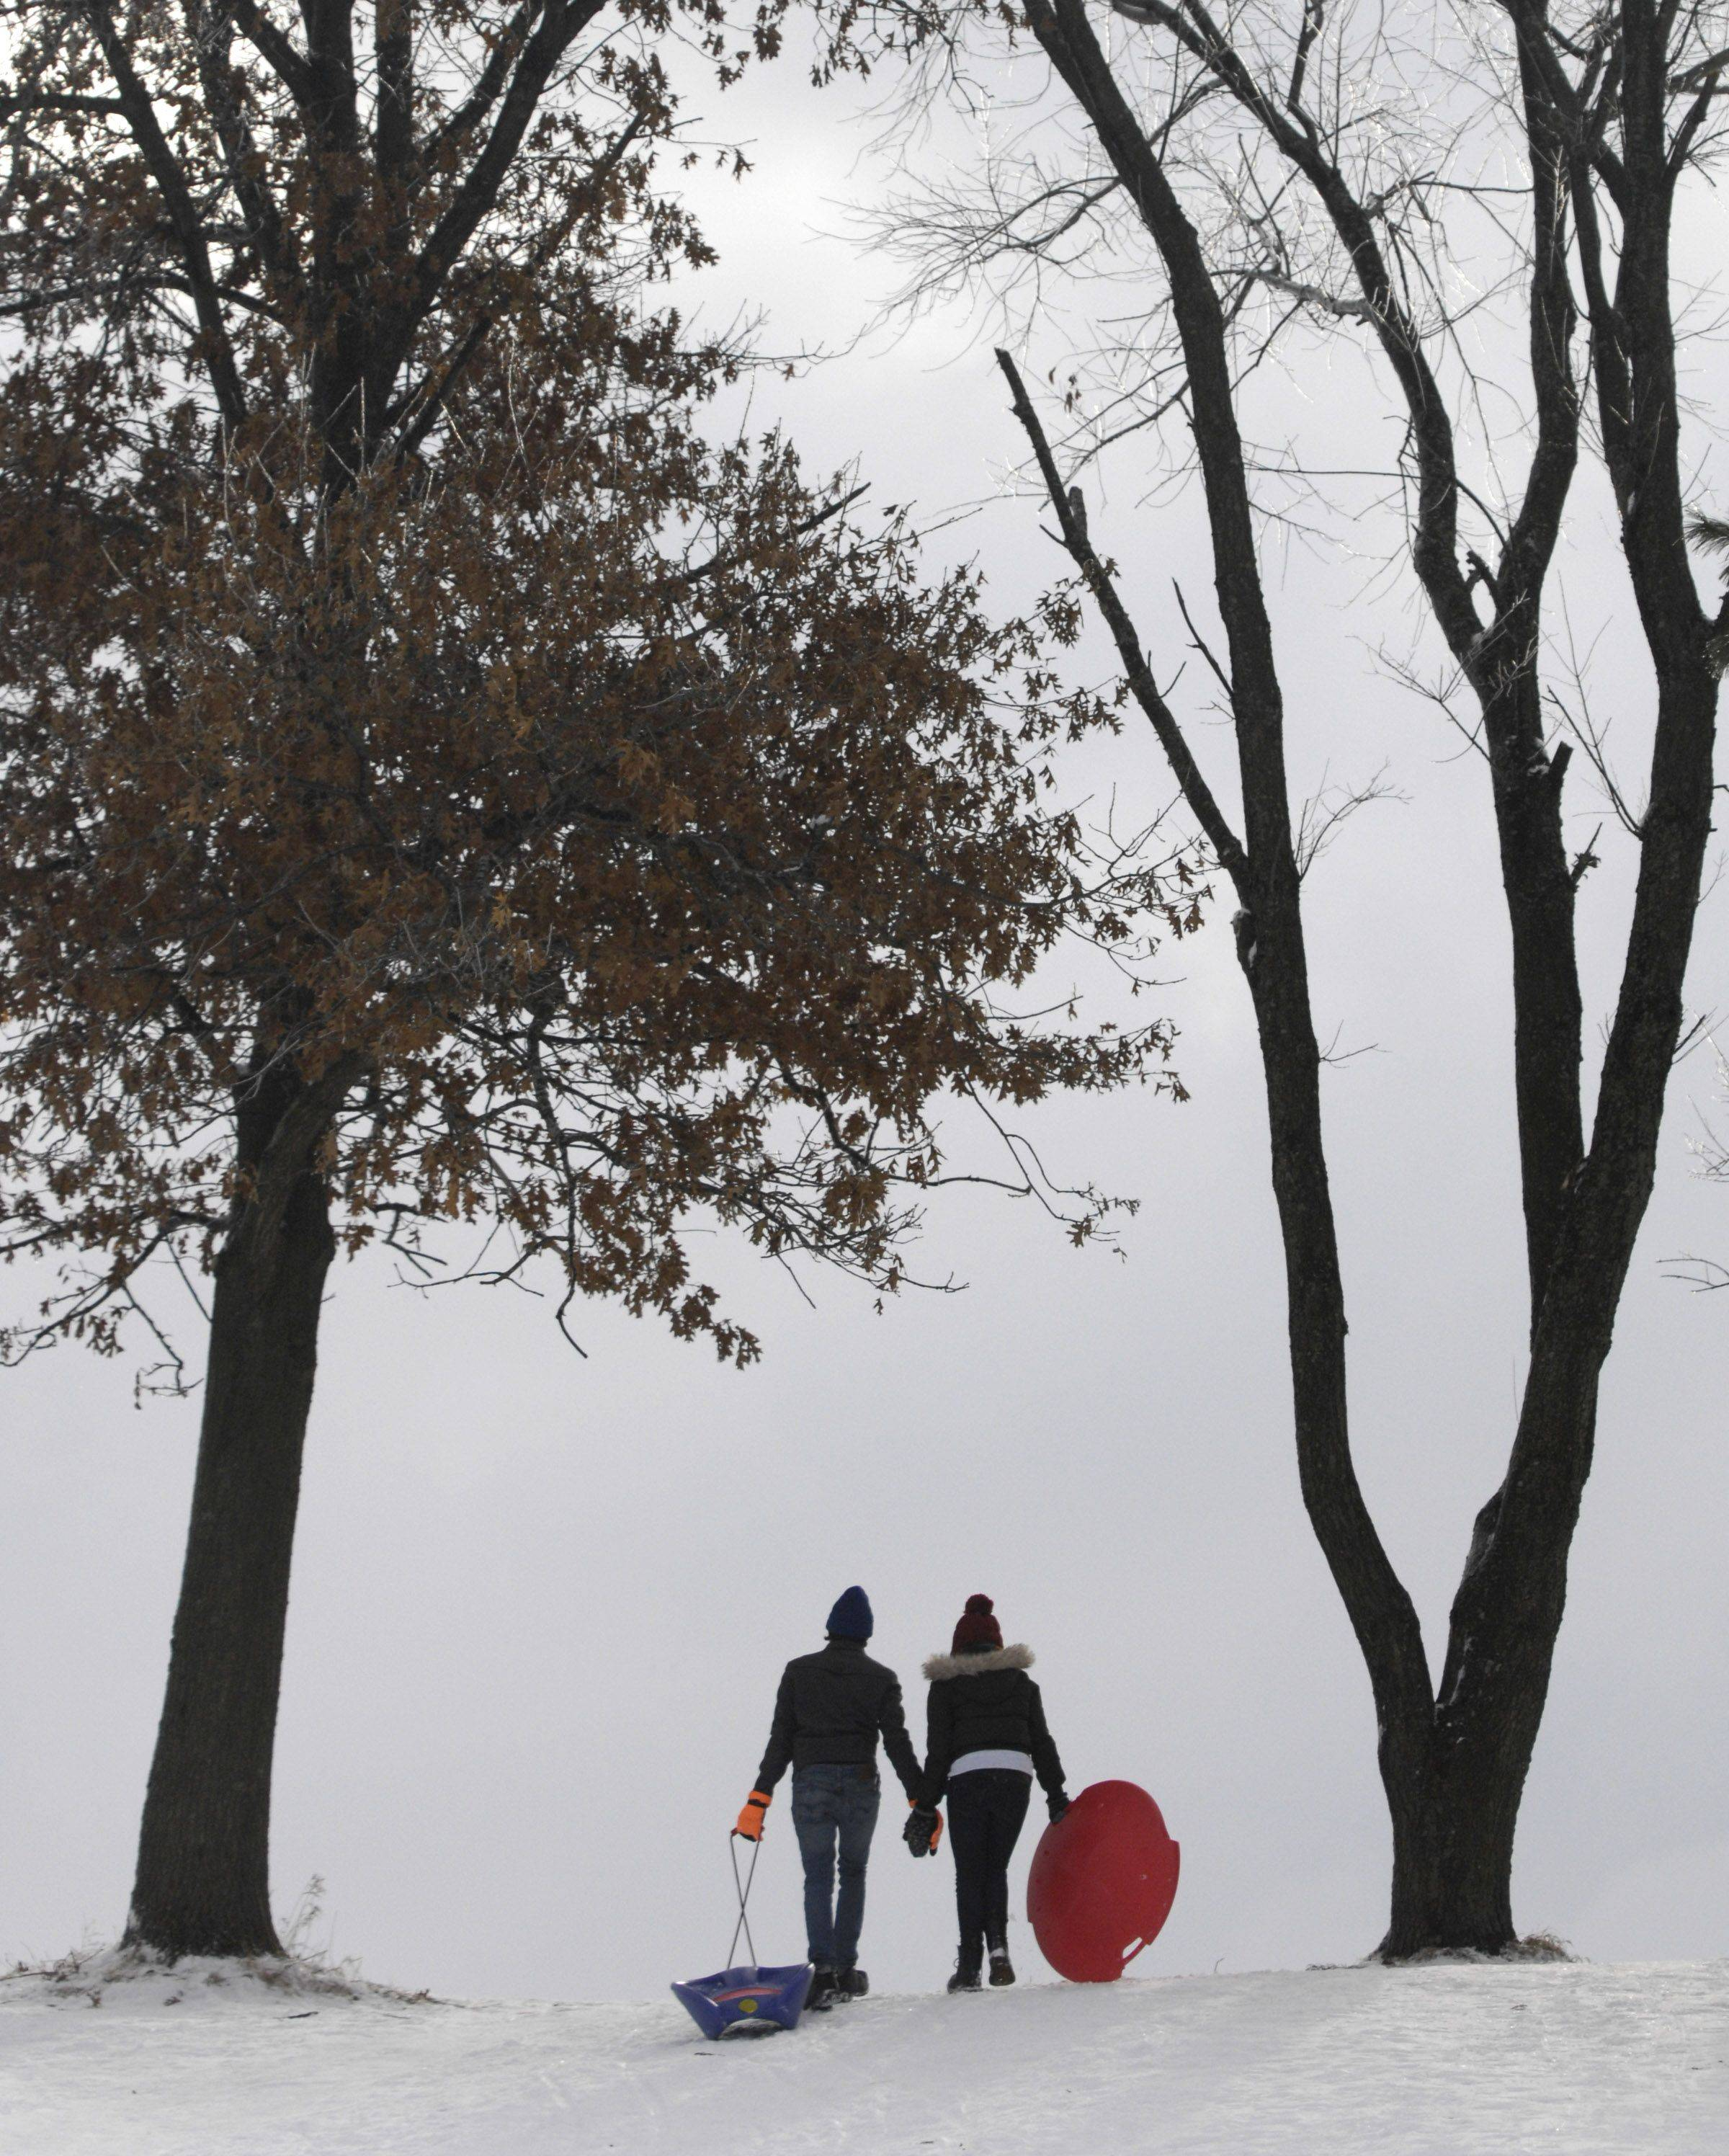 Josh Graber of Carpentersville and Emily Caliende of Algonquin walk hand in hand as they climb the sledding hill at Randall Oaks in West Dundee.